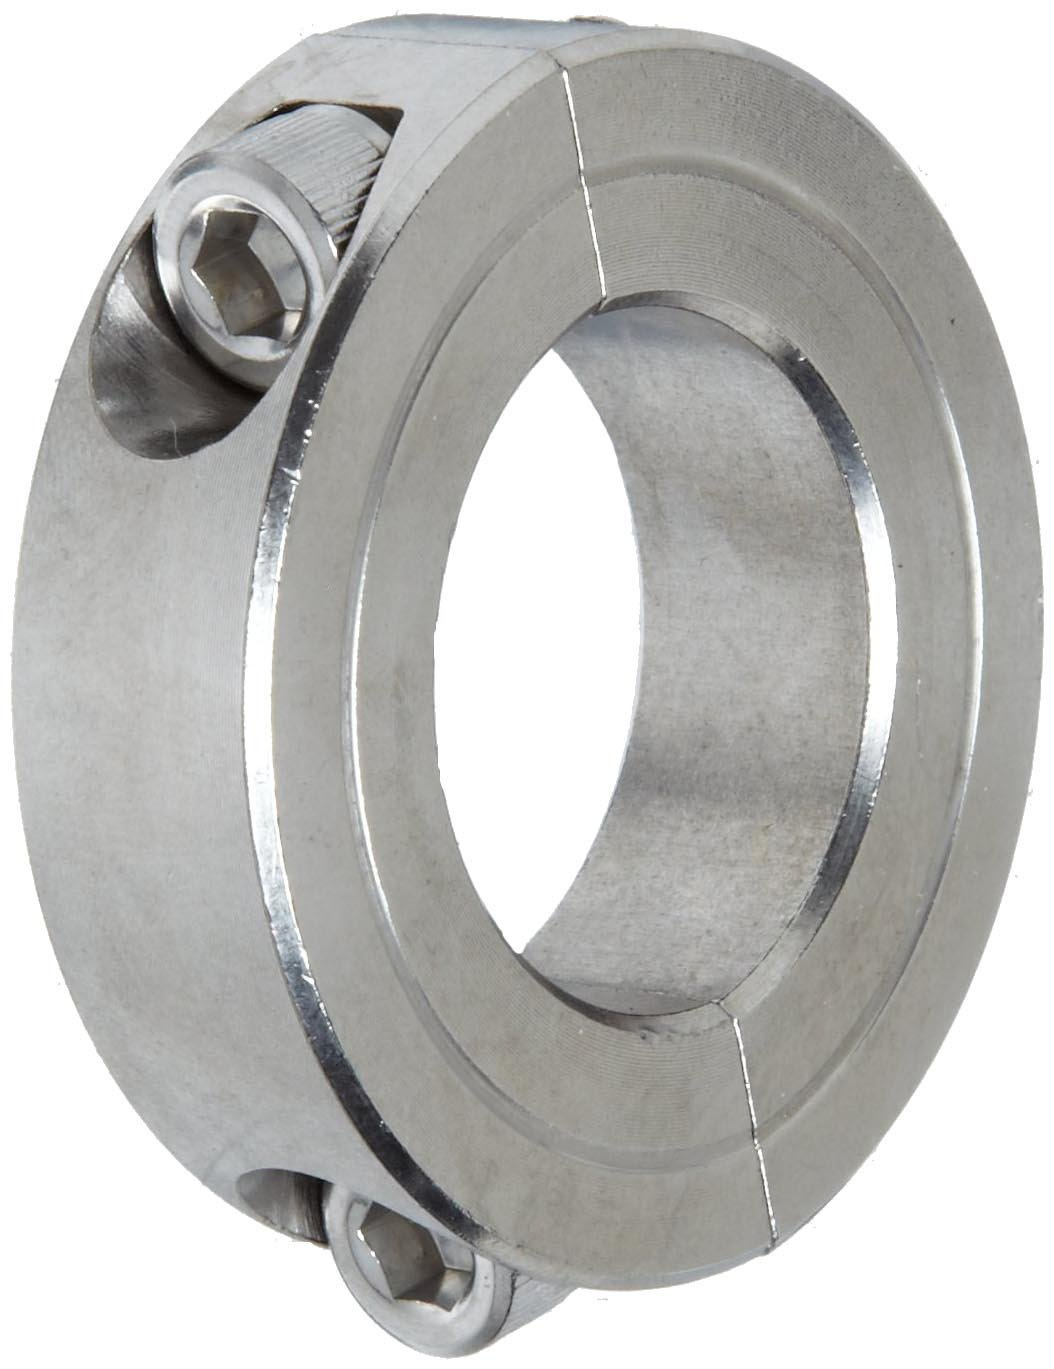 Climax Metal 2C-075-S Sales of SALE items from new works T303 Free shipping on posting reviews Stainless Steel Two-Piece Co Clamping